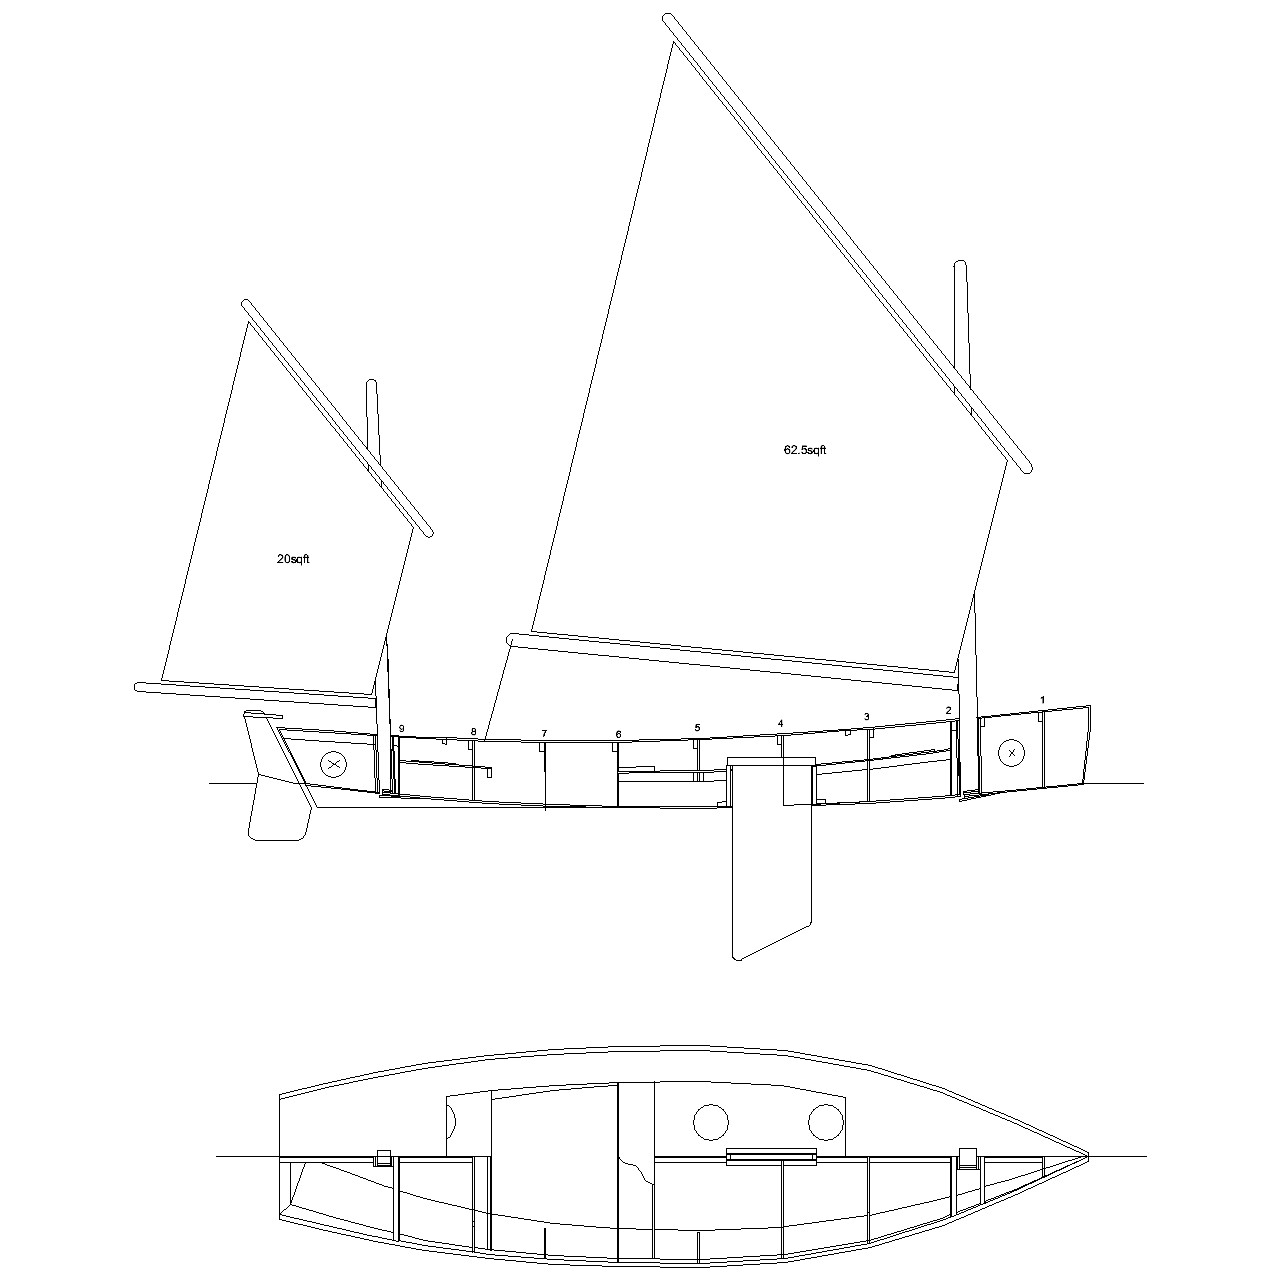 Light Trow Mk 2 – drawings for making a model ...